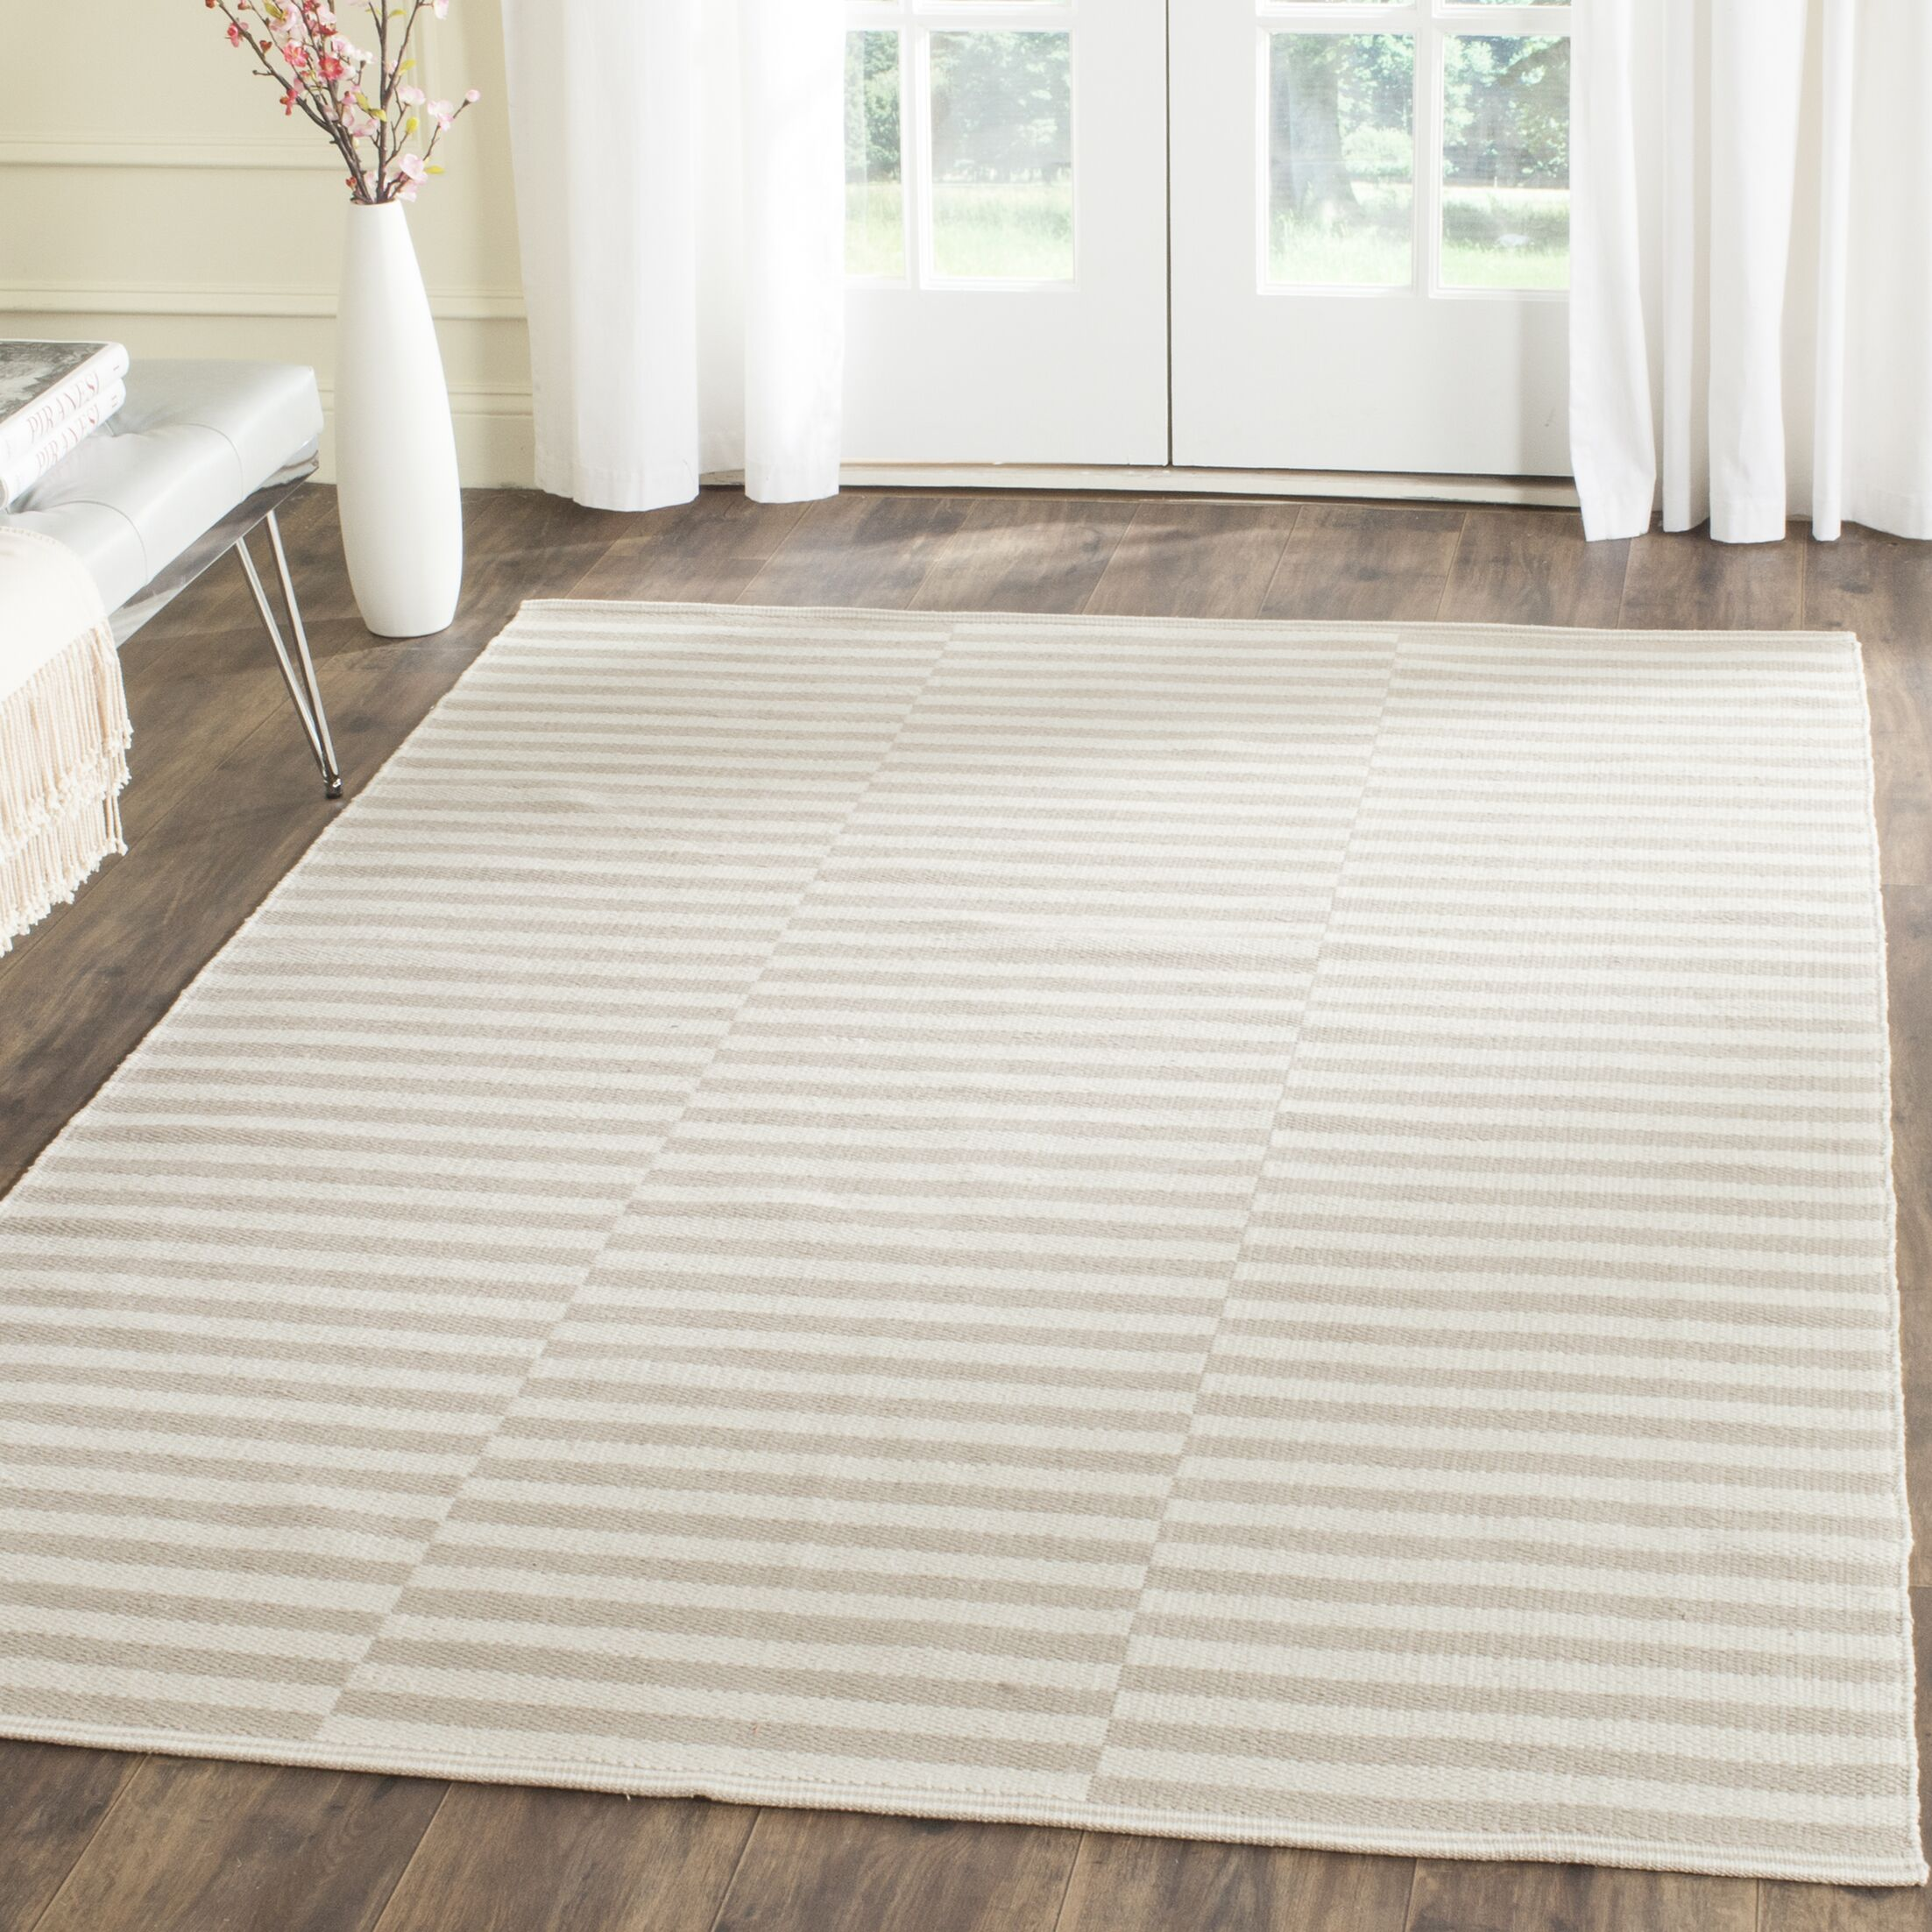 Orwell Hand-Woven Cotton Ivory/Light Gray Area Rug Rug Size: Rectangle 5' x 7'